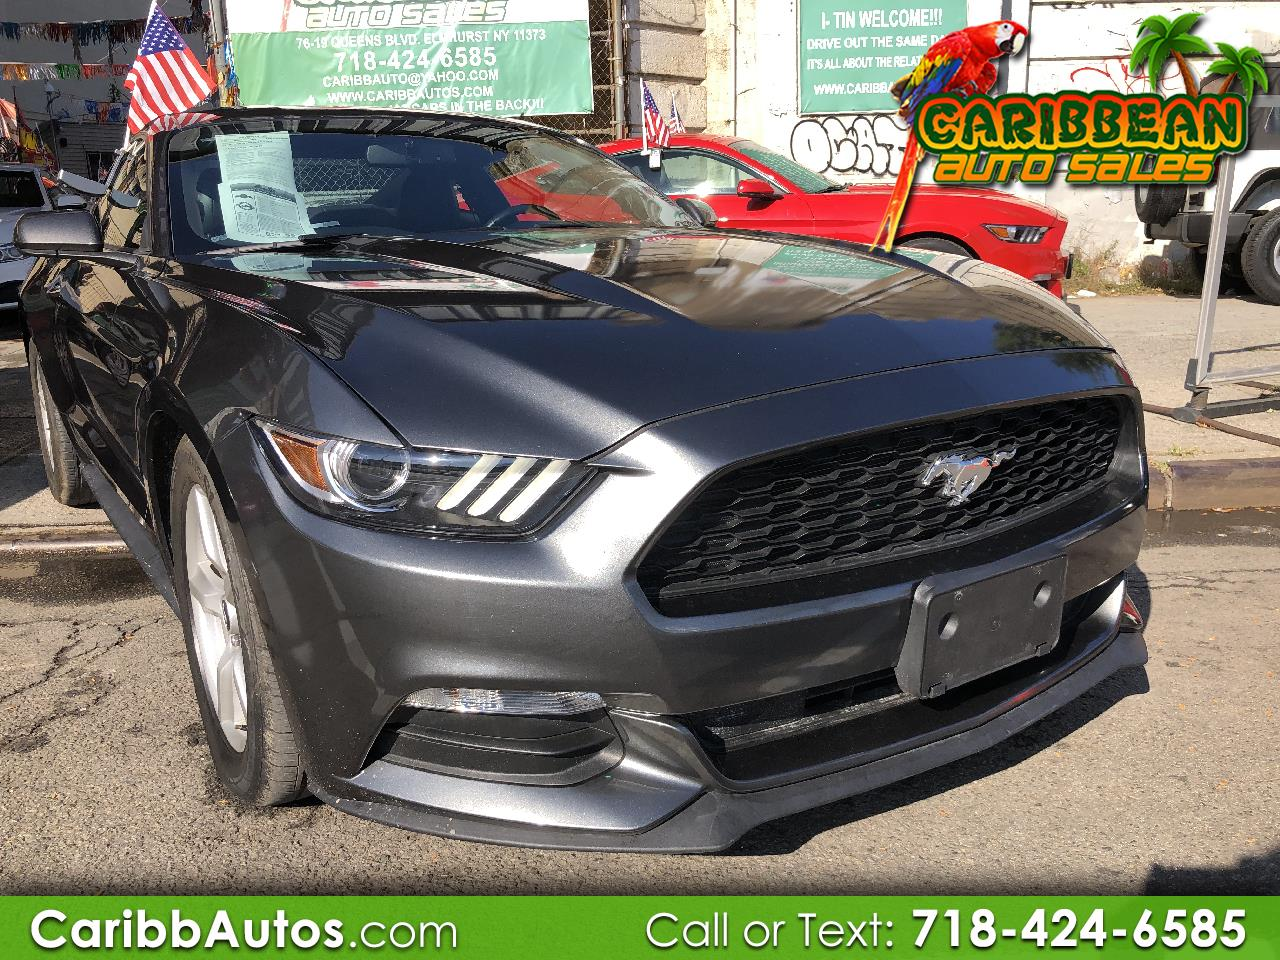 Caribbean Auto Sales >> Used 2017 Ford Mustang V6 Fastback For Sale In Elmhurst Ny